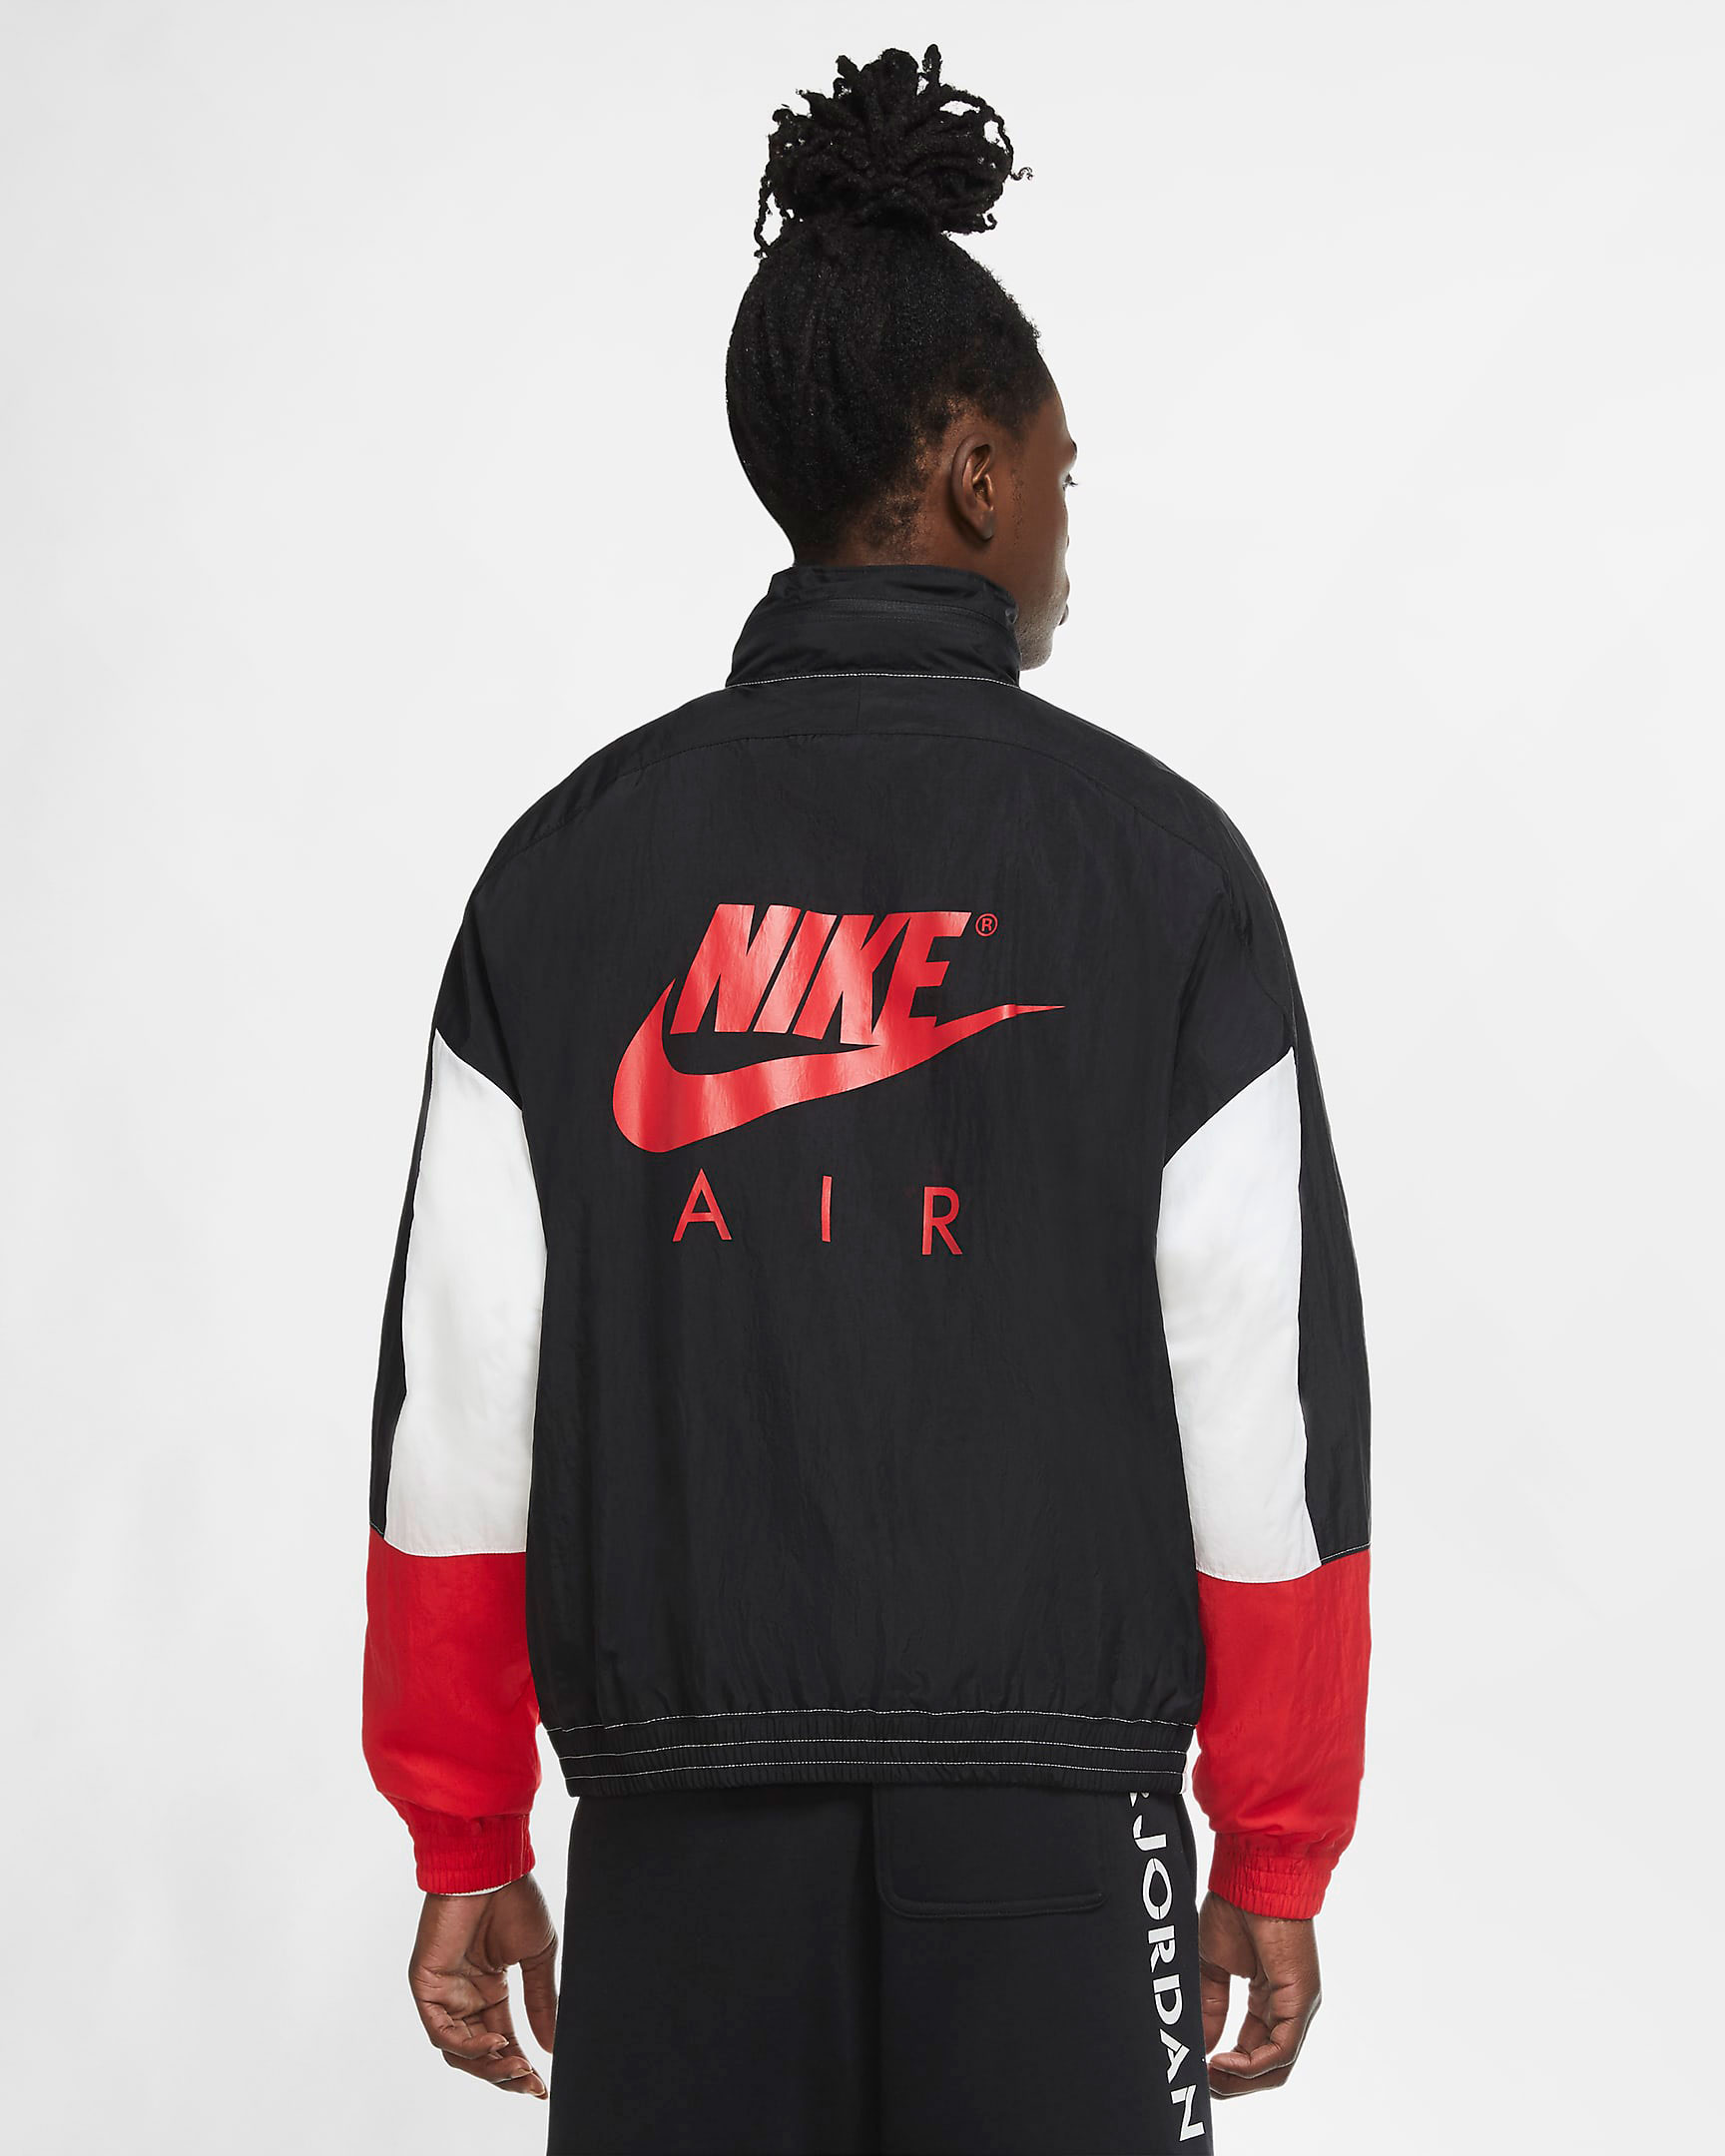 air-jordan-4-fire-red-2020-jacket-2